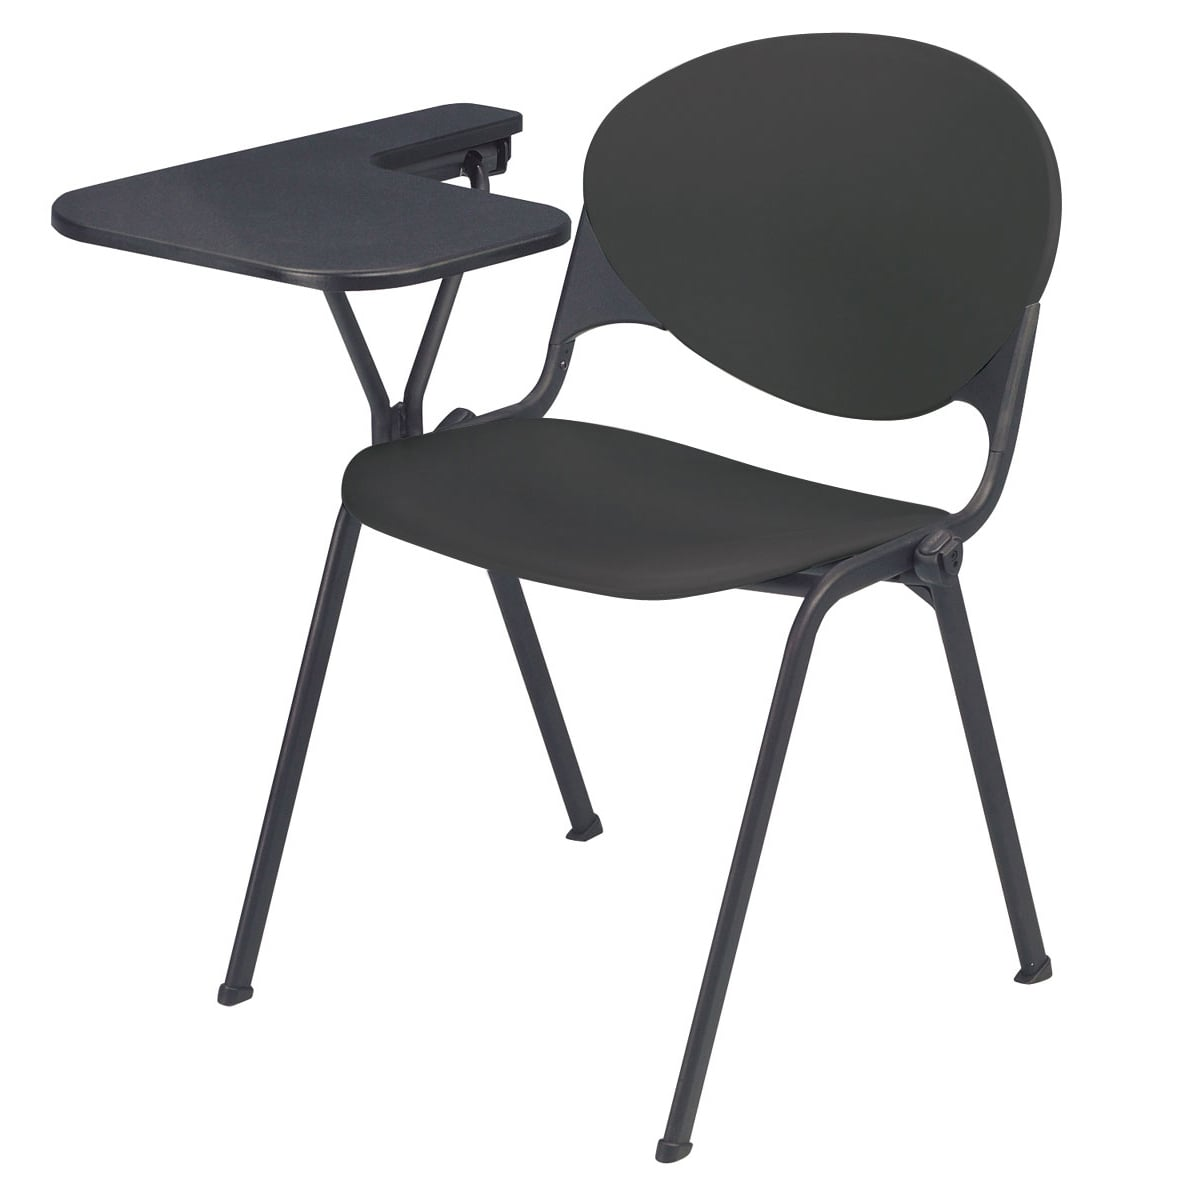 KFI Polypropylene Stacking School Chair with Right Writing Tablet